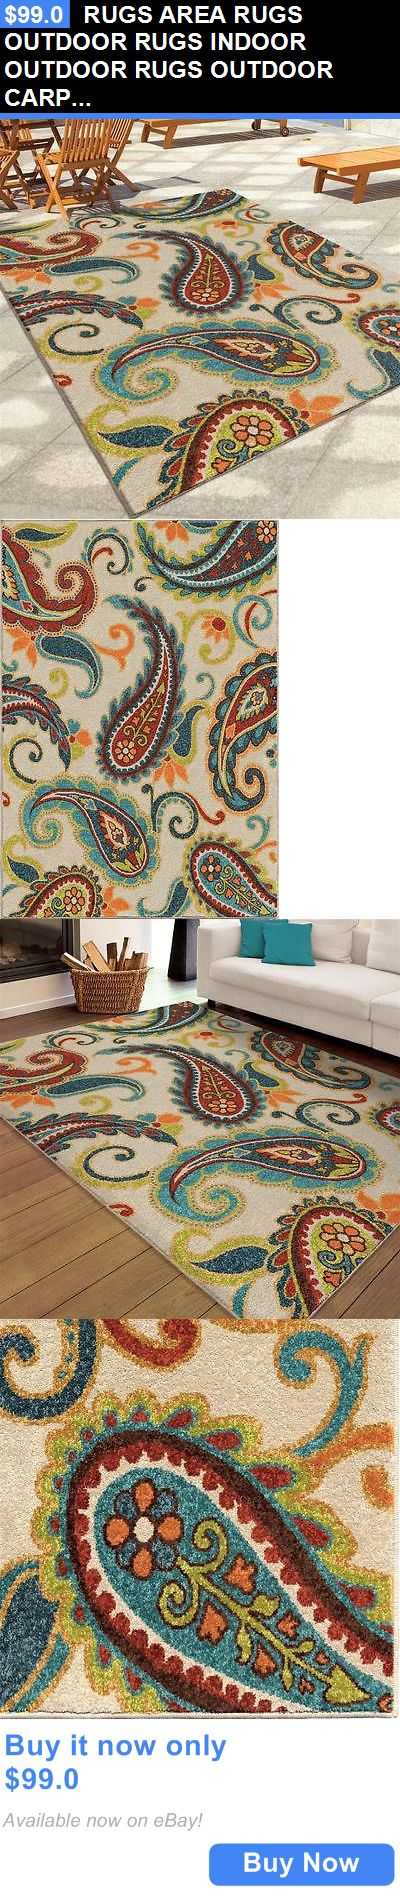 household items: Rugs Area Rugs Outdoor Rugs Indoor Outdoor Rugs Outdoor Carpet Rug Sale ~ New ~ BUY IT NOW ONLY: $99.0